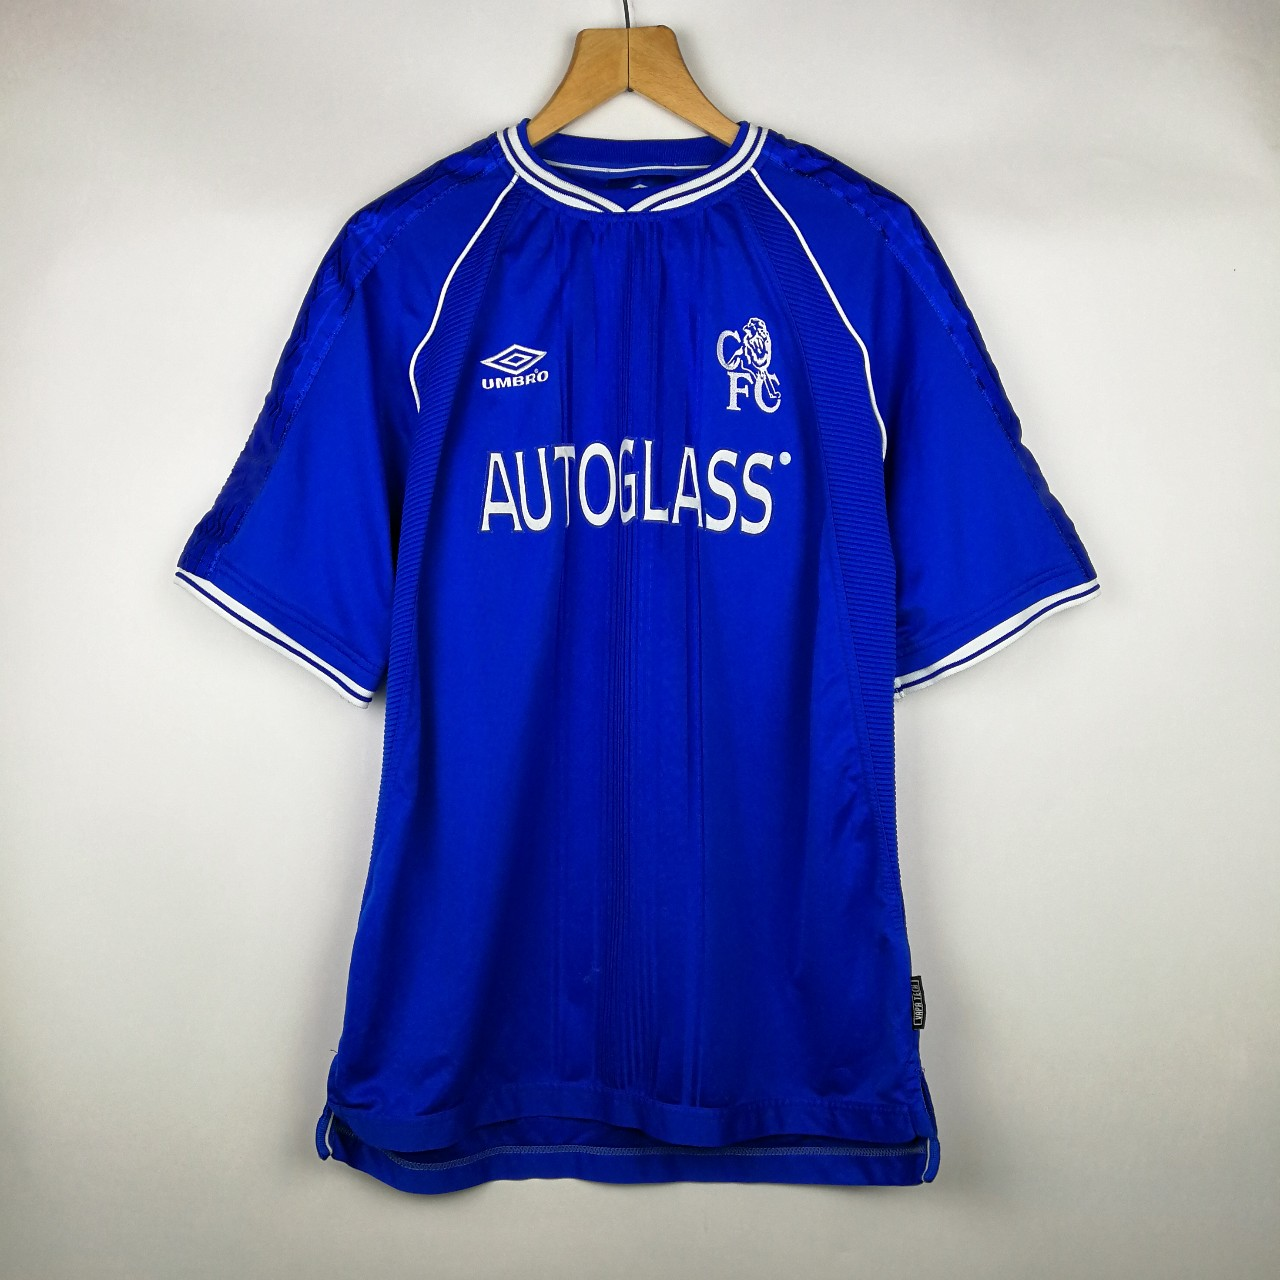 new products 4e0af 84dae VINTAGE OVERSIZED UMBRO X CHELSEA FC 1999/2000 S ...